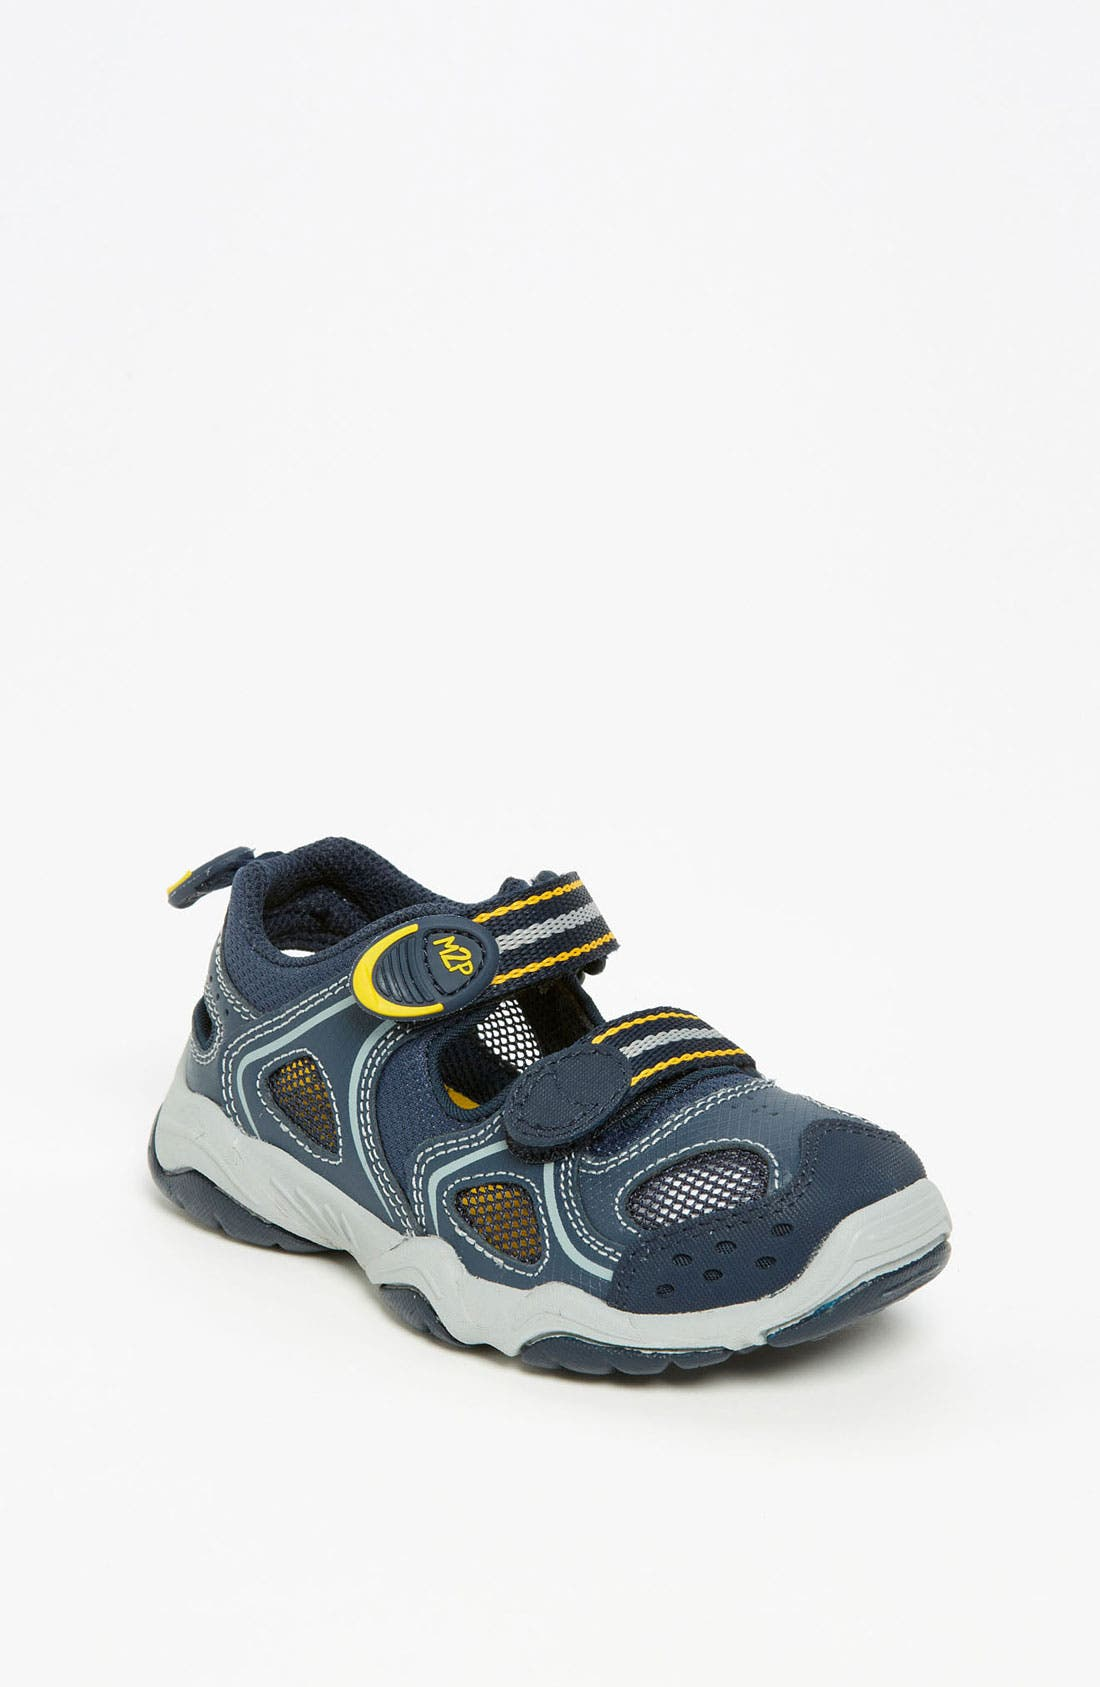 Alternate Image 1 Selected - Stride Rite 'Perry' Sandal (Toddler)